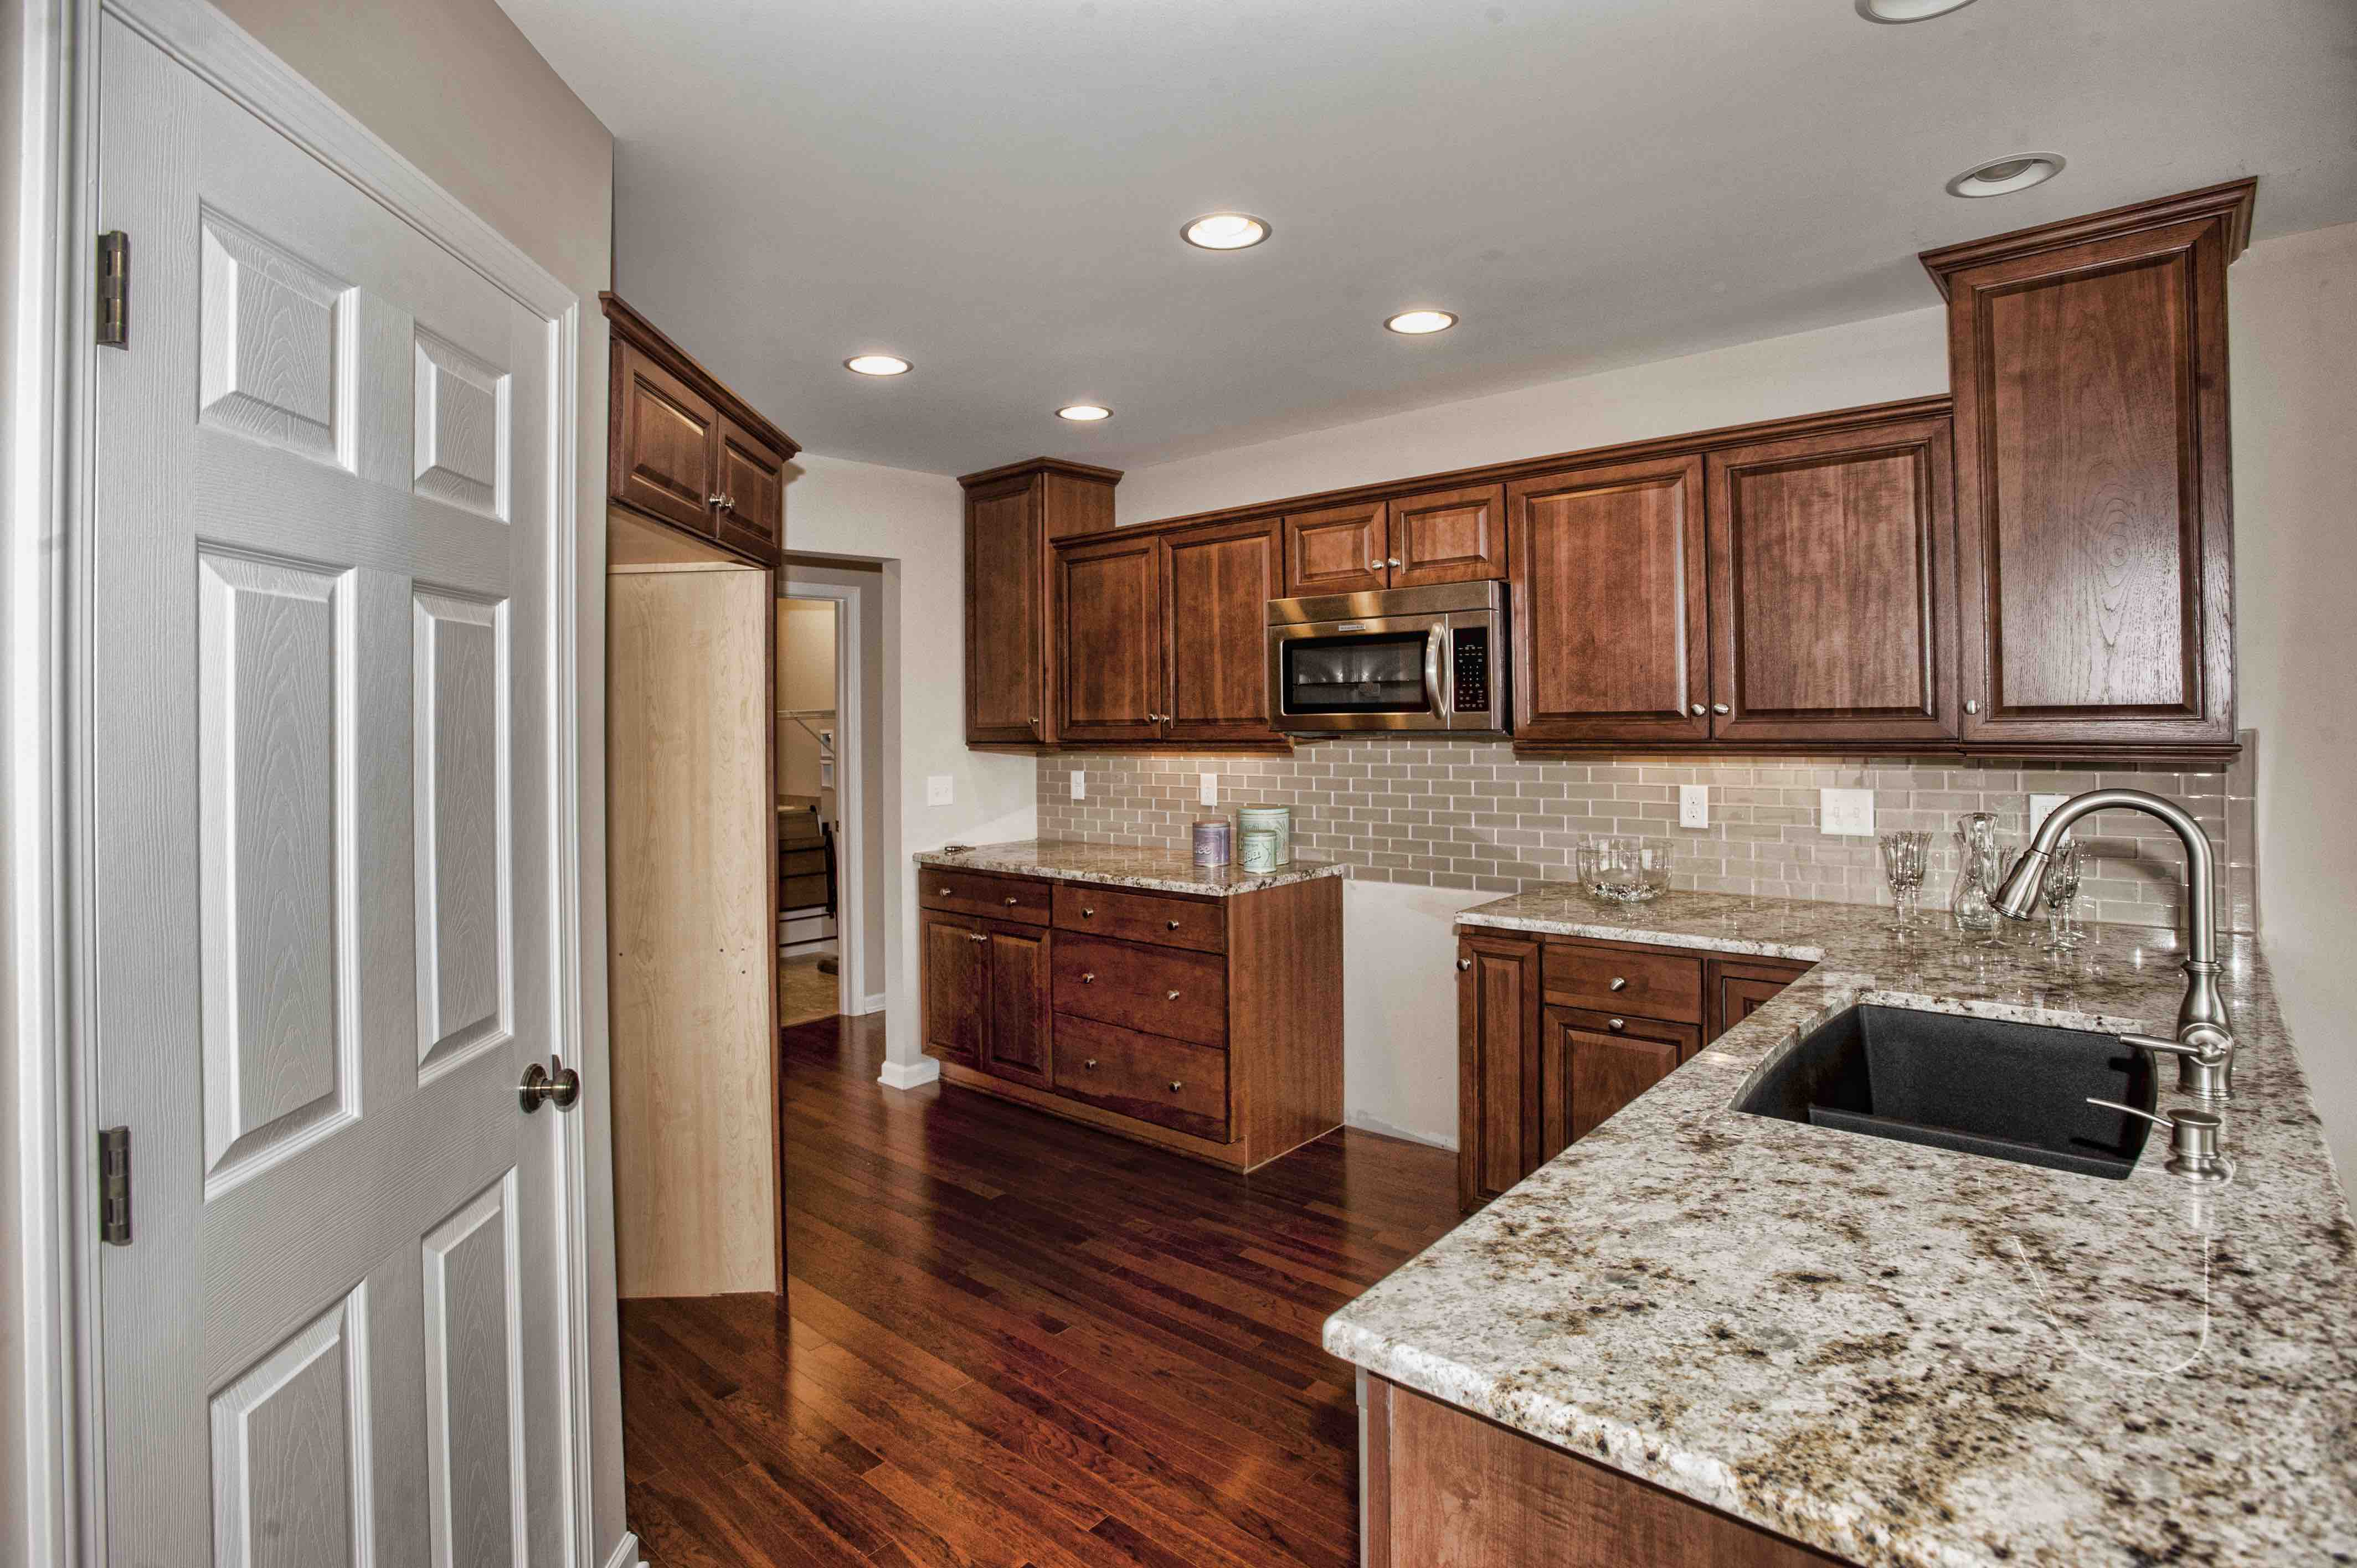 Kitchen Snack Bar Featured Home The Hollows East Is Exclusive And Convenient